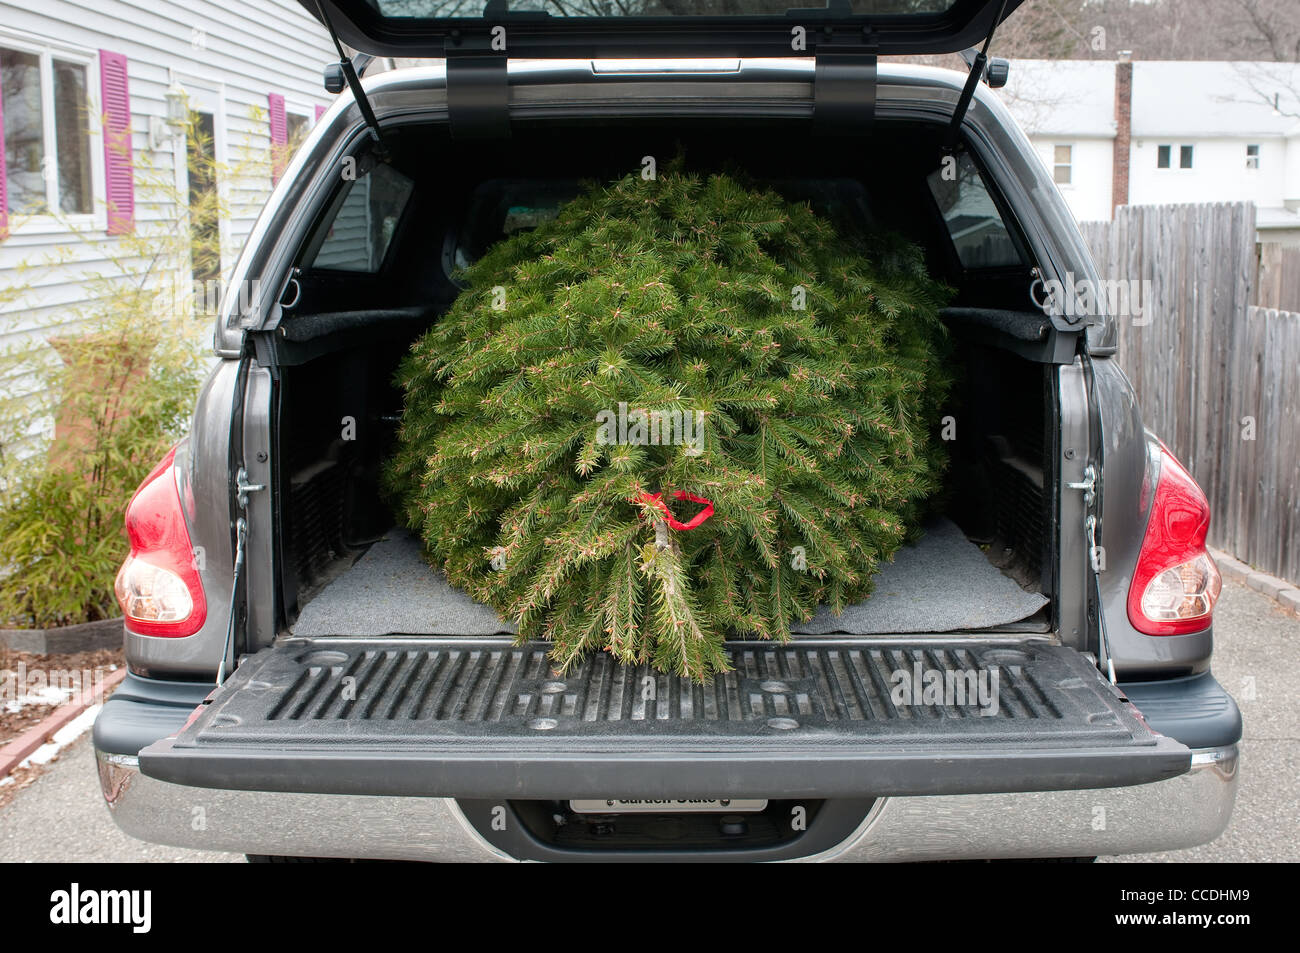 Free Christmas Tree Pick Up Part - 29: Stock Photo - A Christmas Tree In The Back Of A Pickup Truck